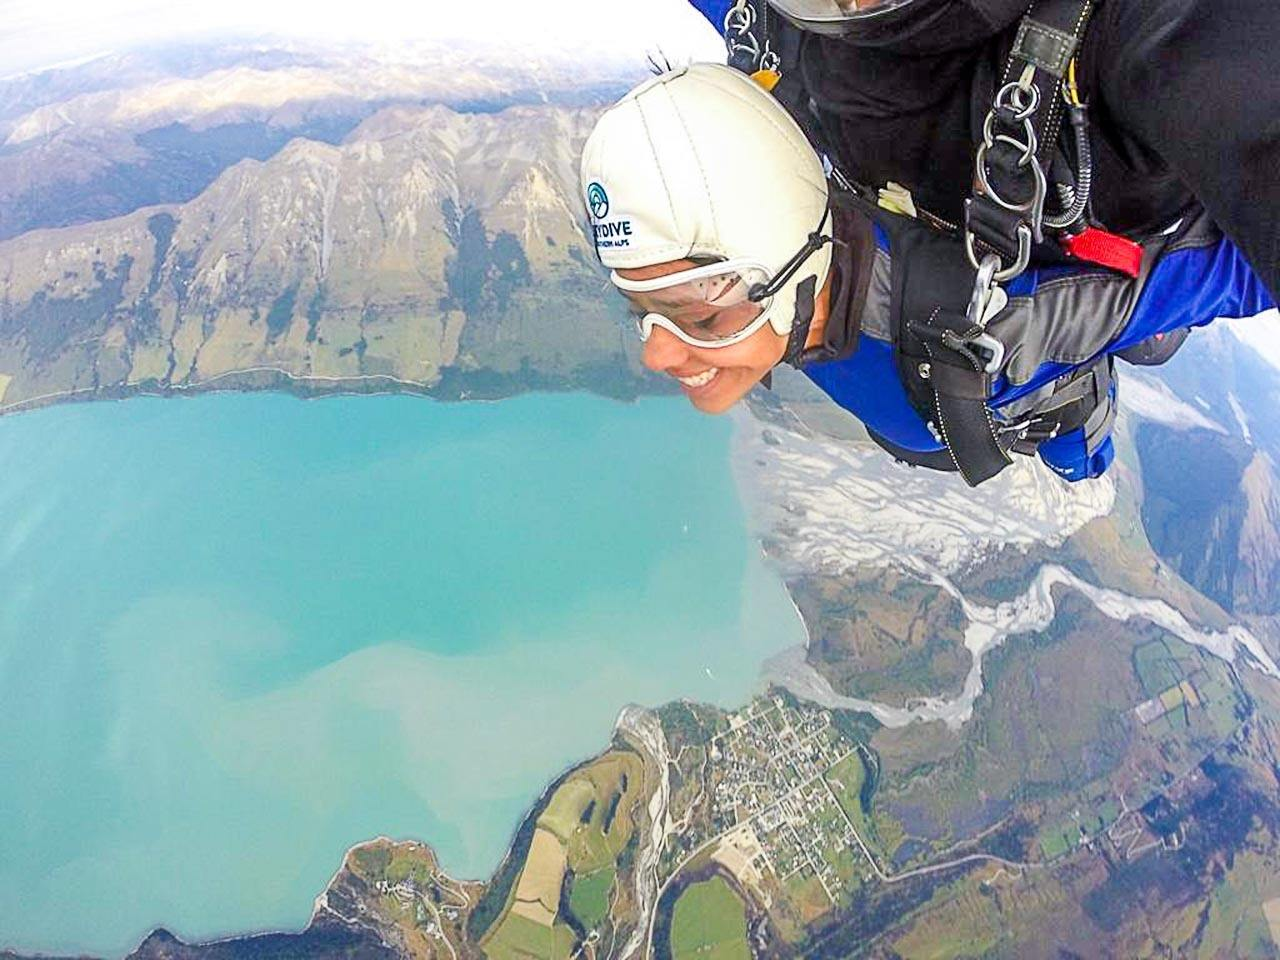 New Zealand trip costs: prices and money saving travel tips - Love and Road